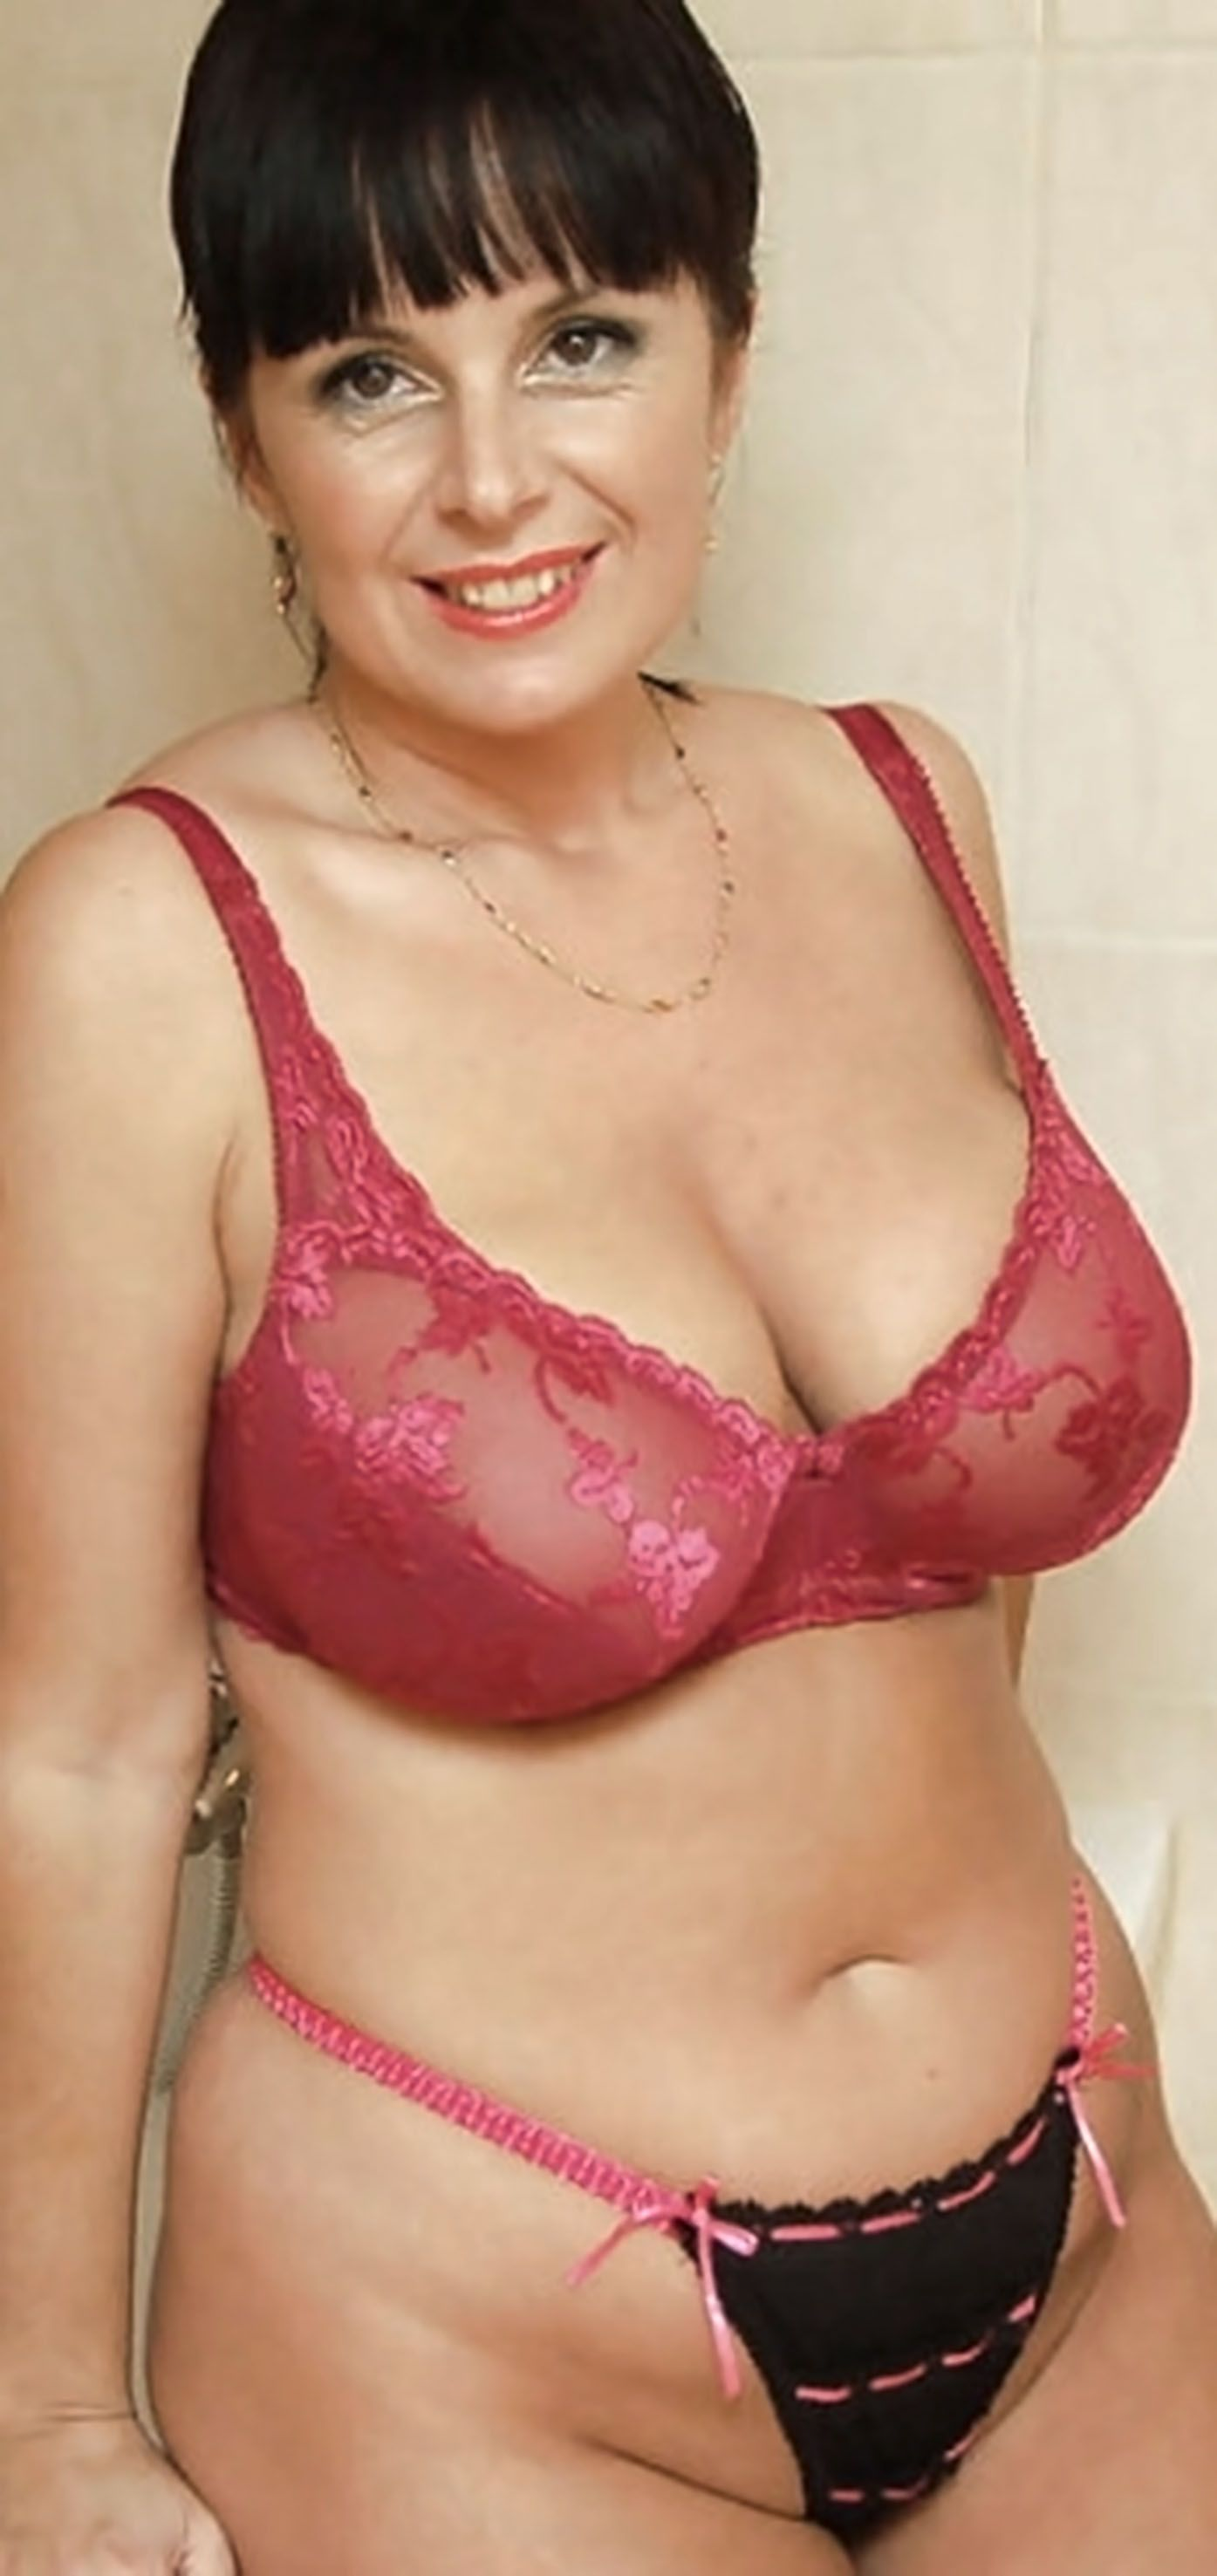 Lovely woman. Mature boobs are an ASSET to modelling not a ...